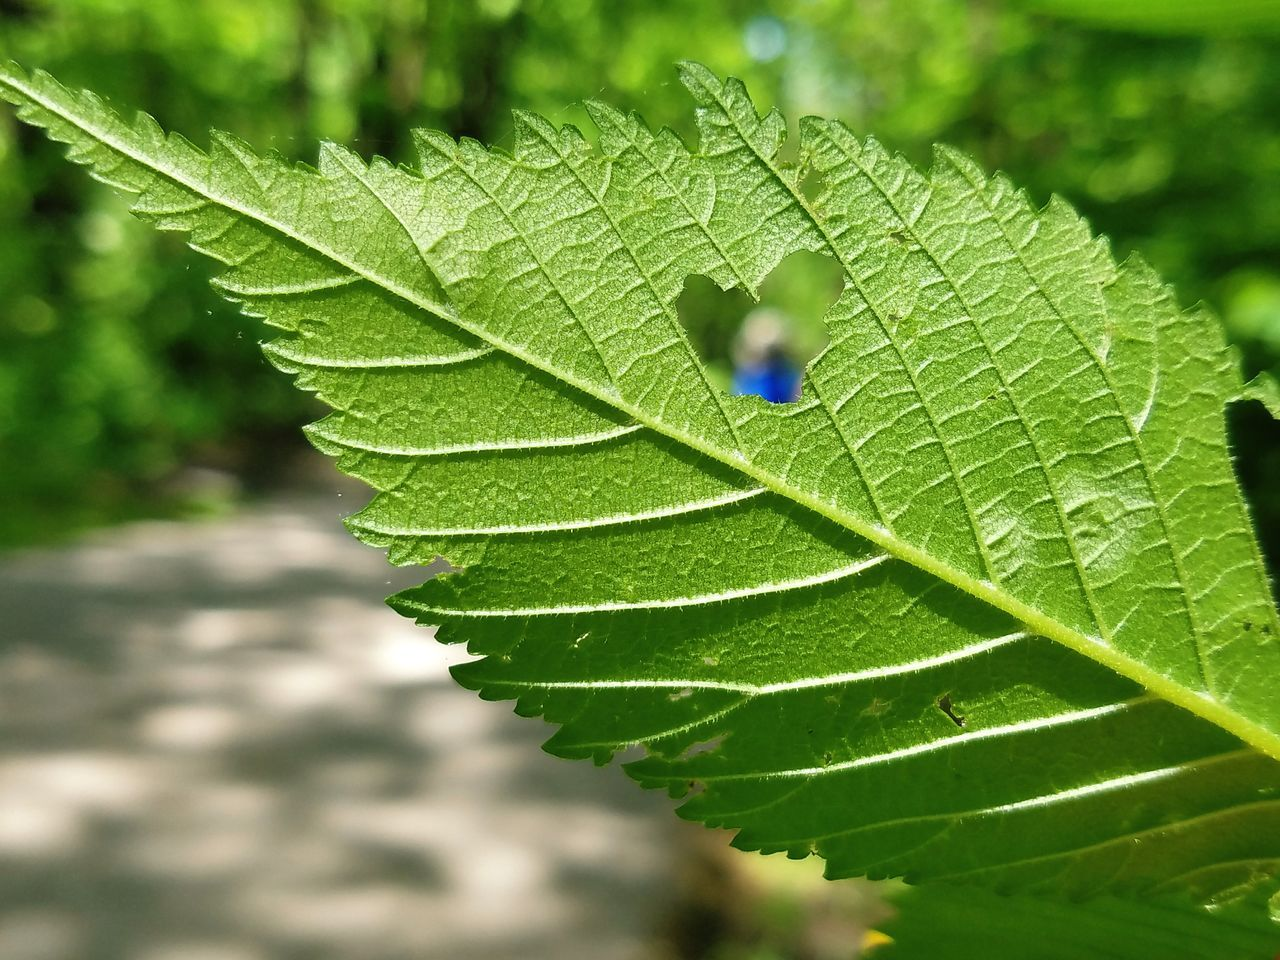 Heart Leaf Nature Green Color Close-up Outdoors Day Plant EyeEm Samsung Galaxy S7 Edge EyeEm Best Shots Android Photography Bokeh